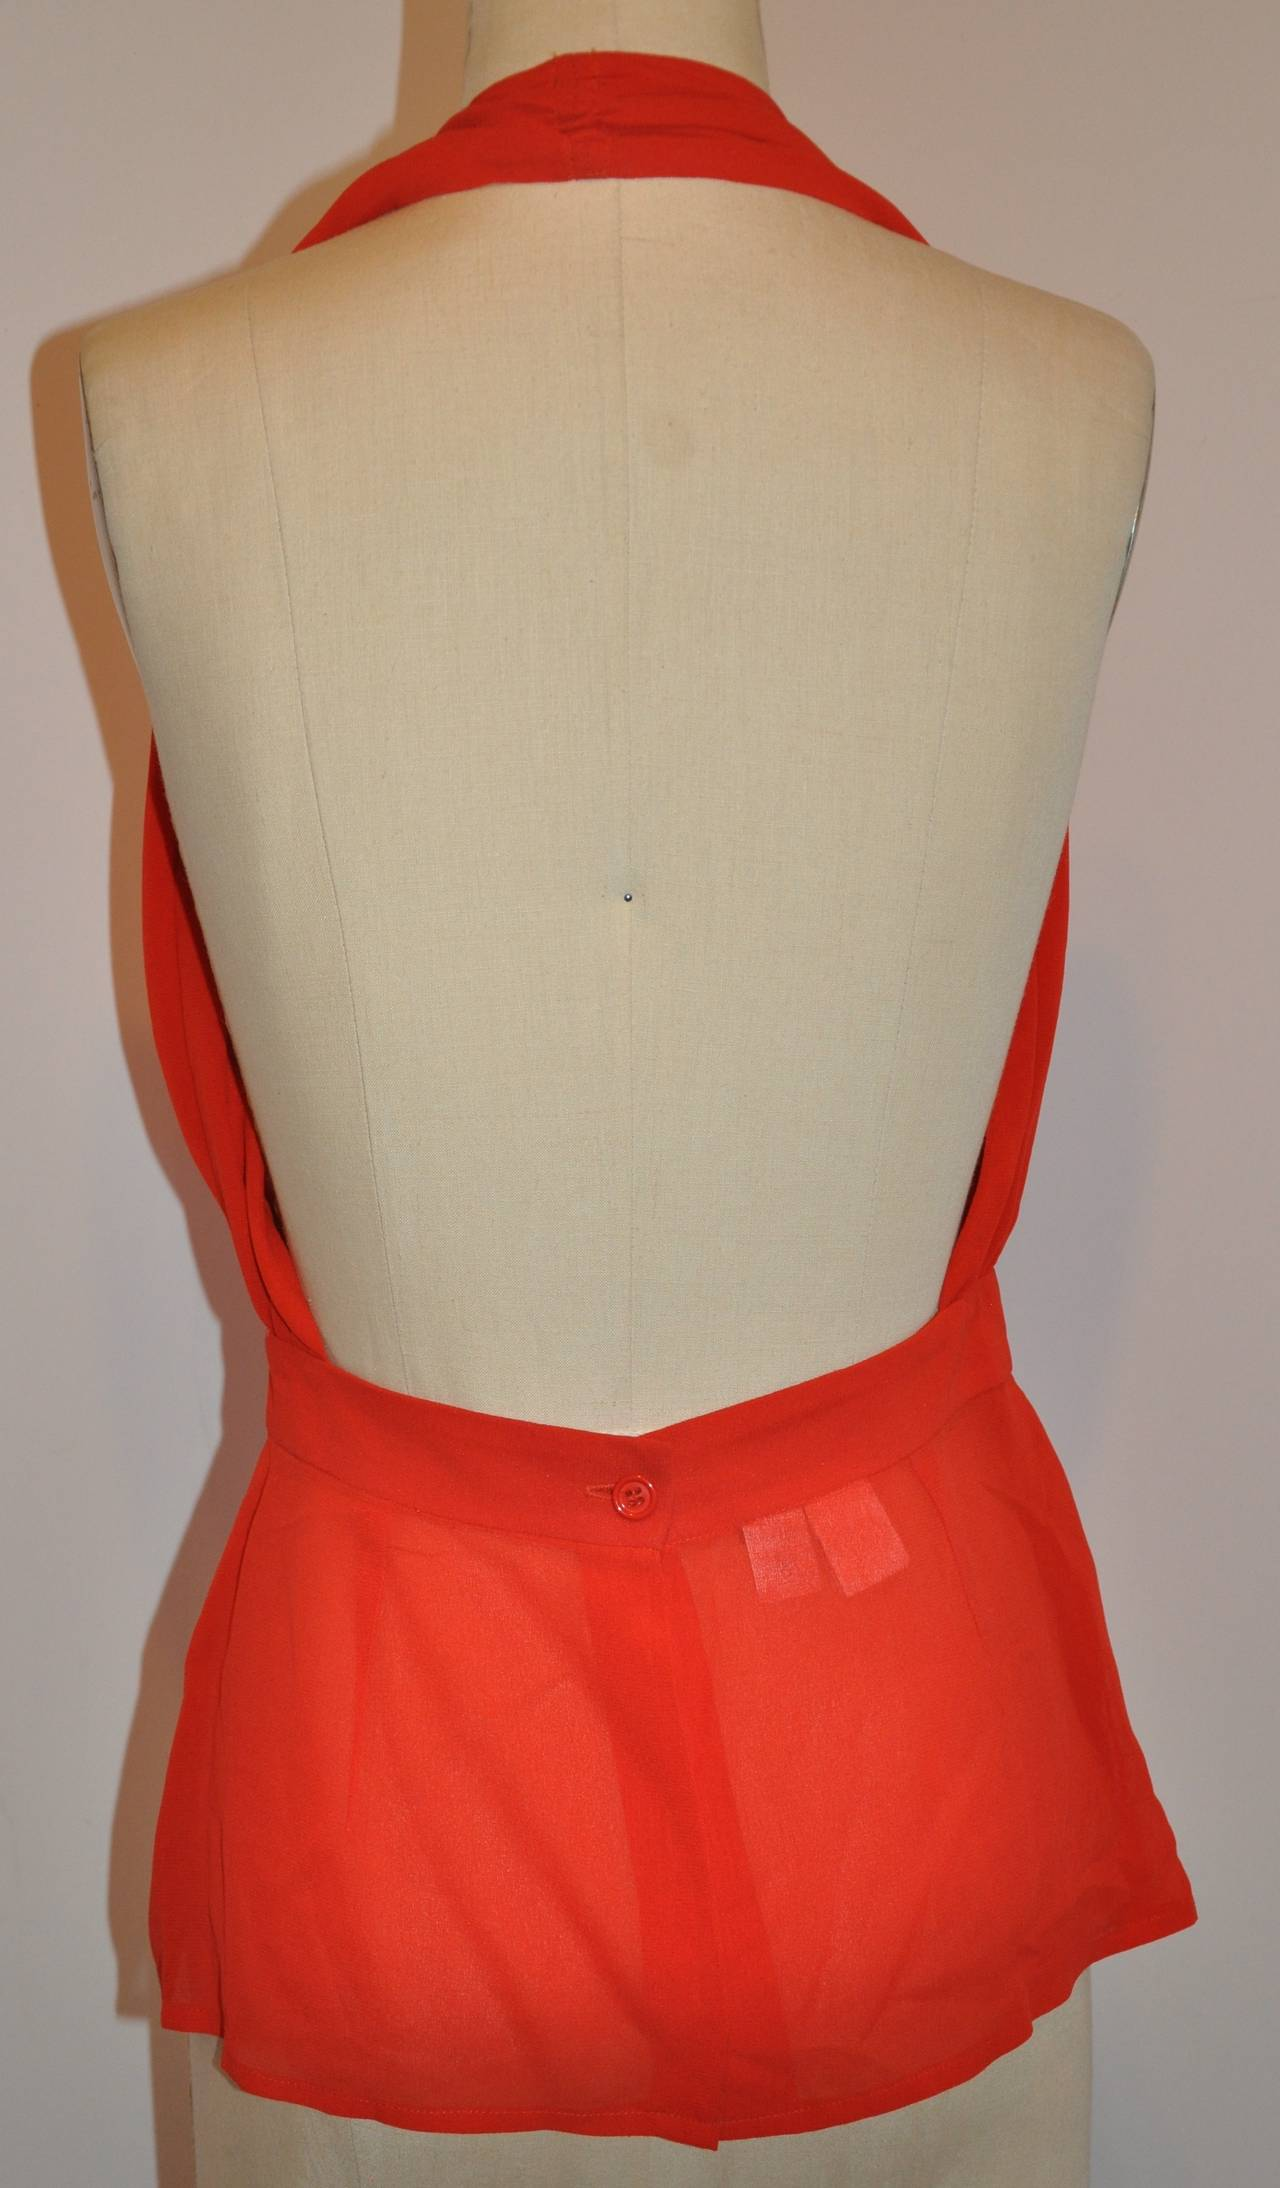 Halston Signature Double-Layered Red Crepe Halter Button Top In Good Condition For Sale In New York, NY